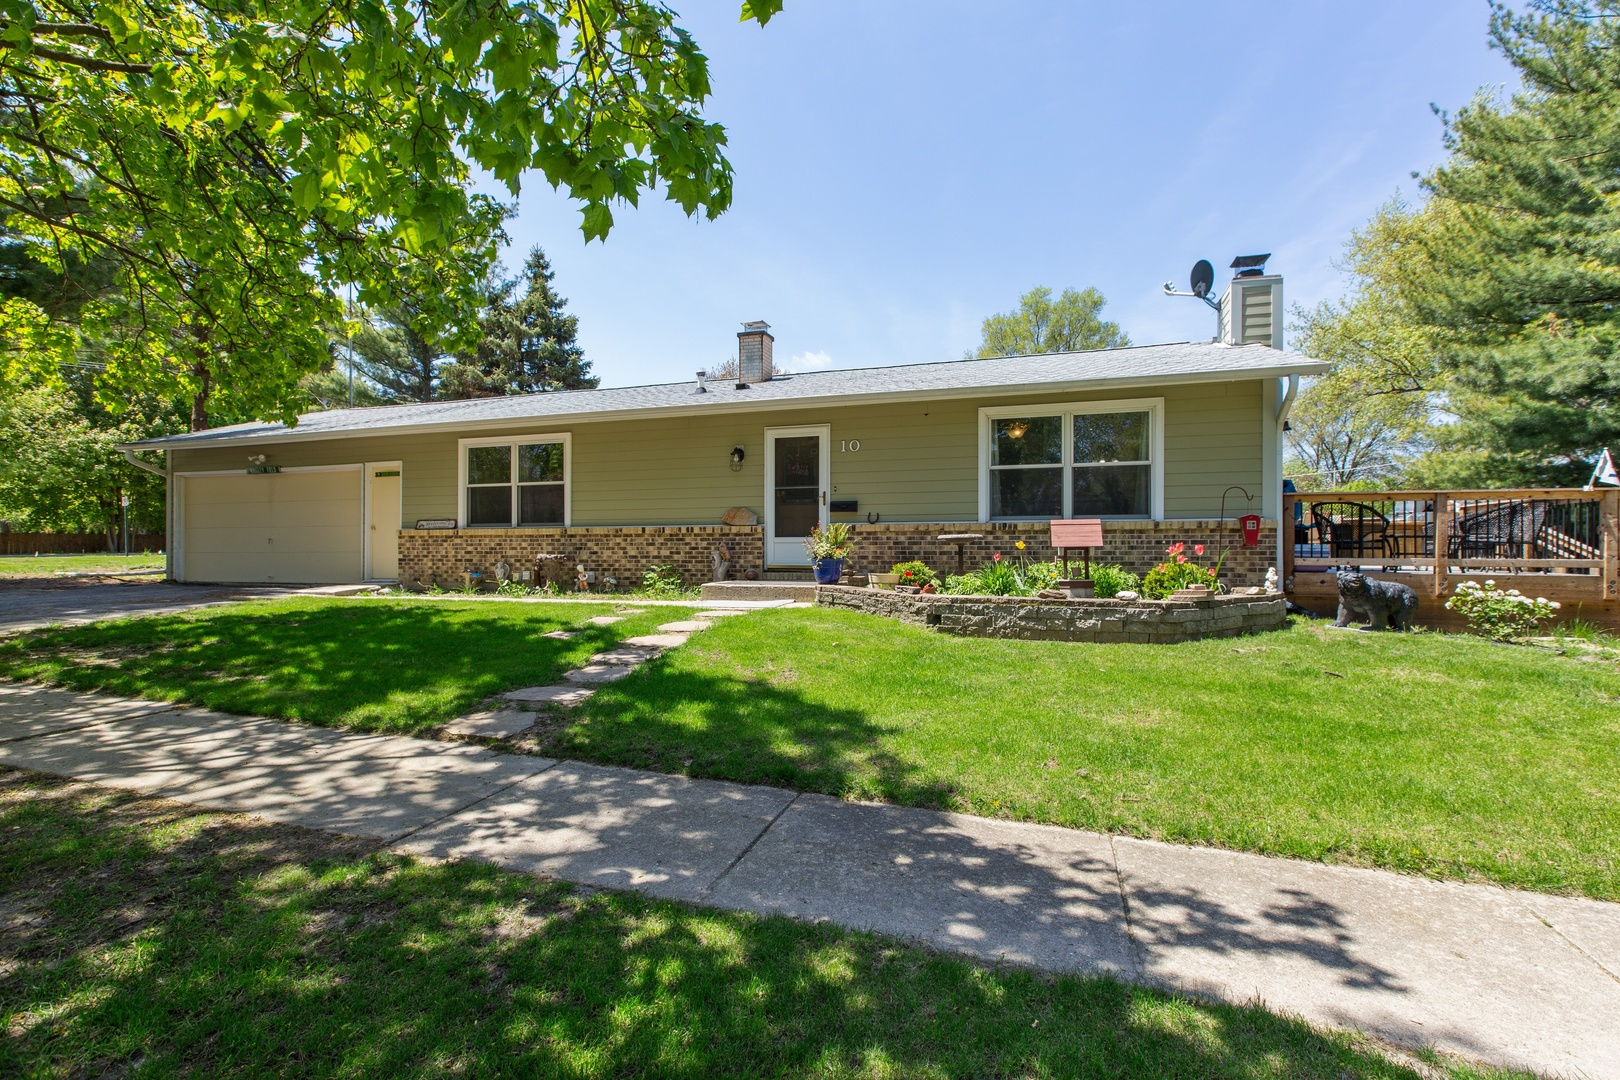 Photo for 10 N Wulff Street, CARY, IL 60013 (MLS # 10378222)